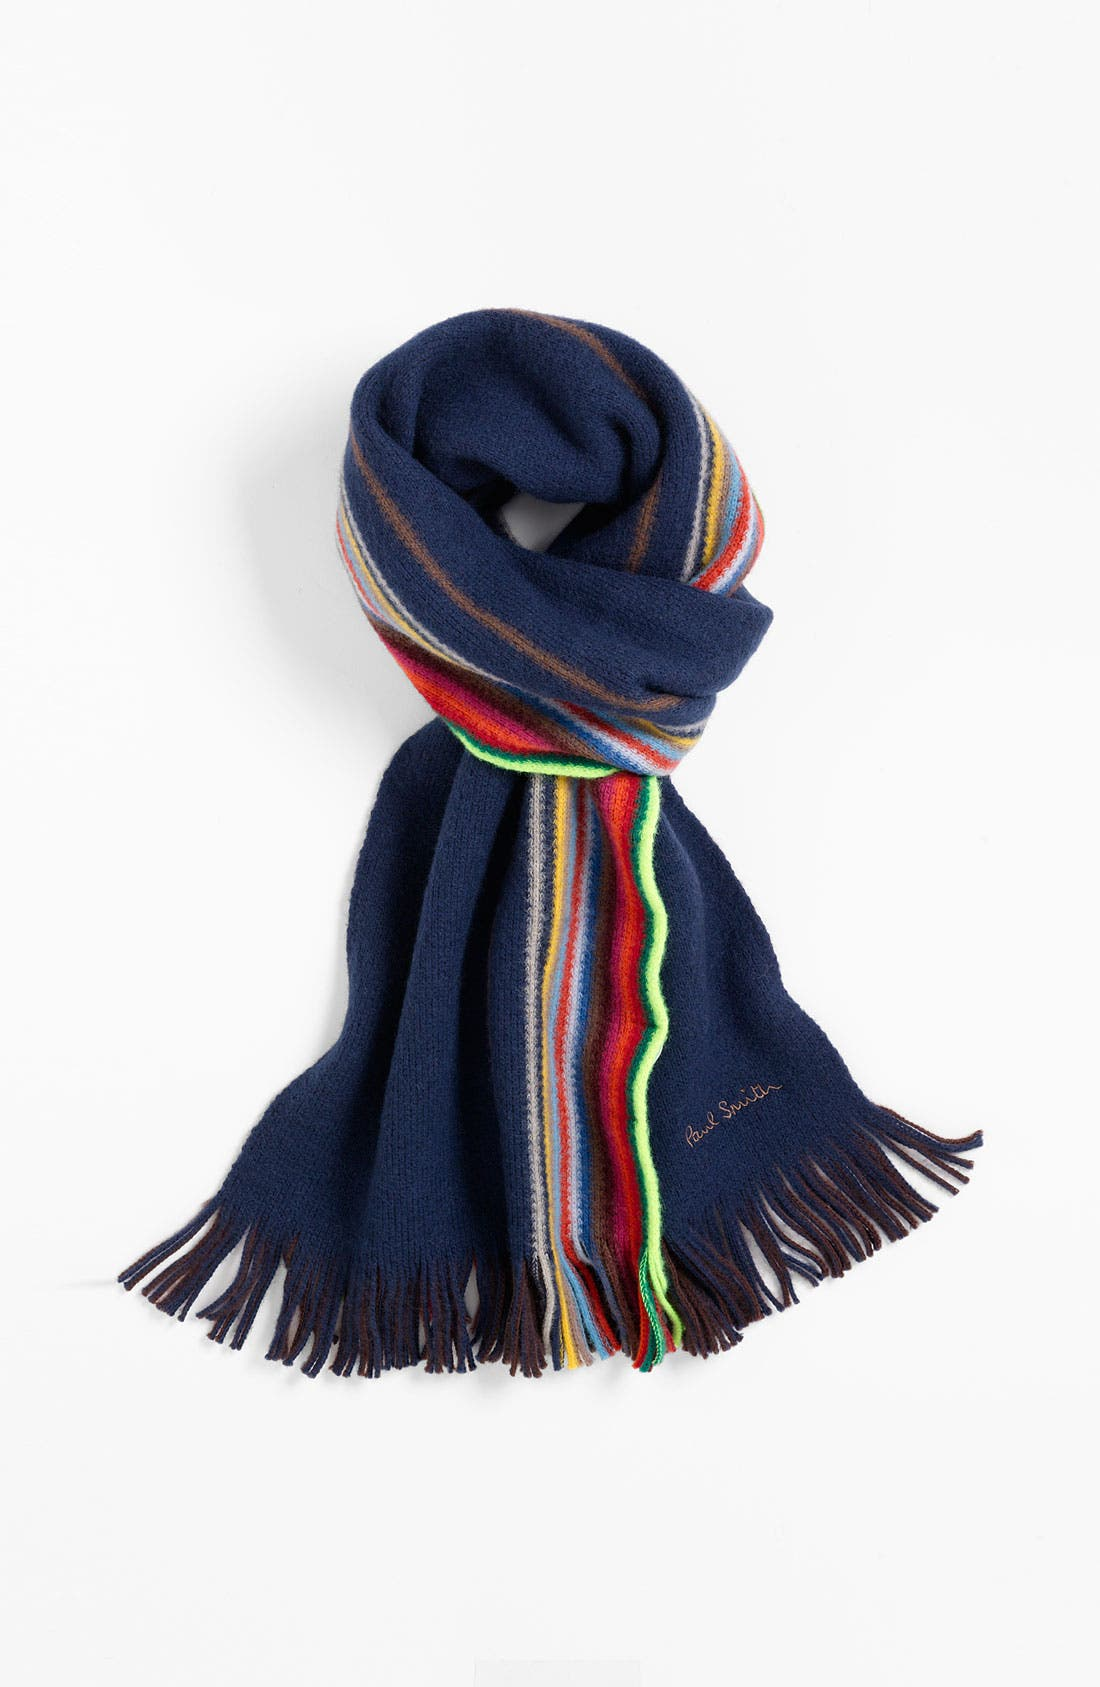 Main Image - Paul Smith Accessories Reversible Stripe Wool Scarf